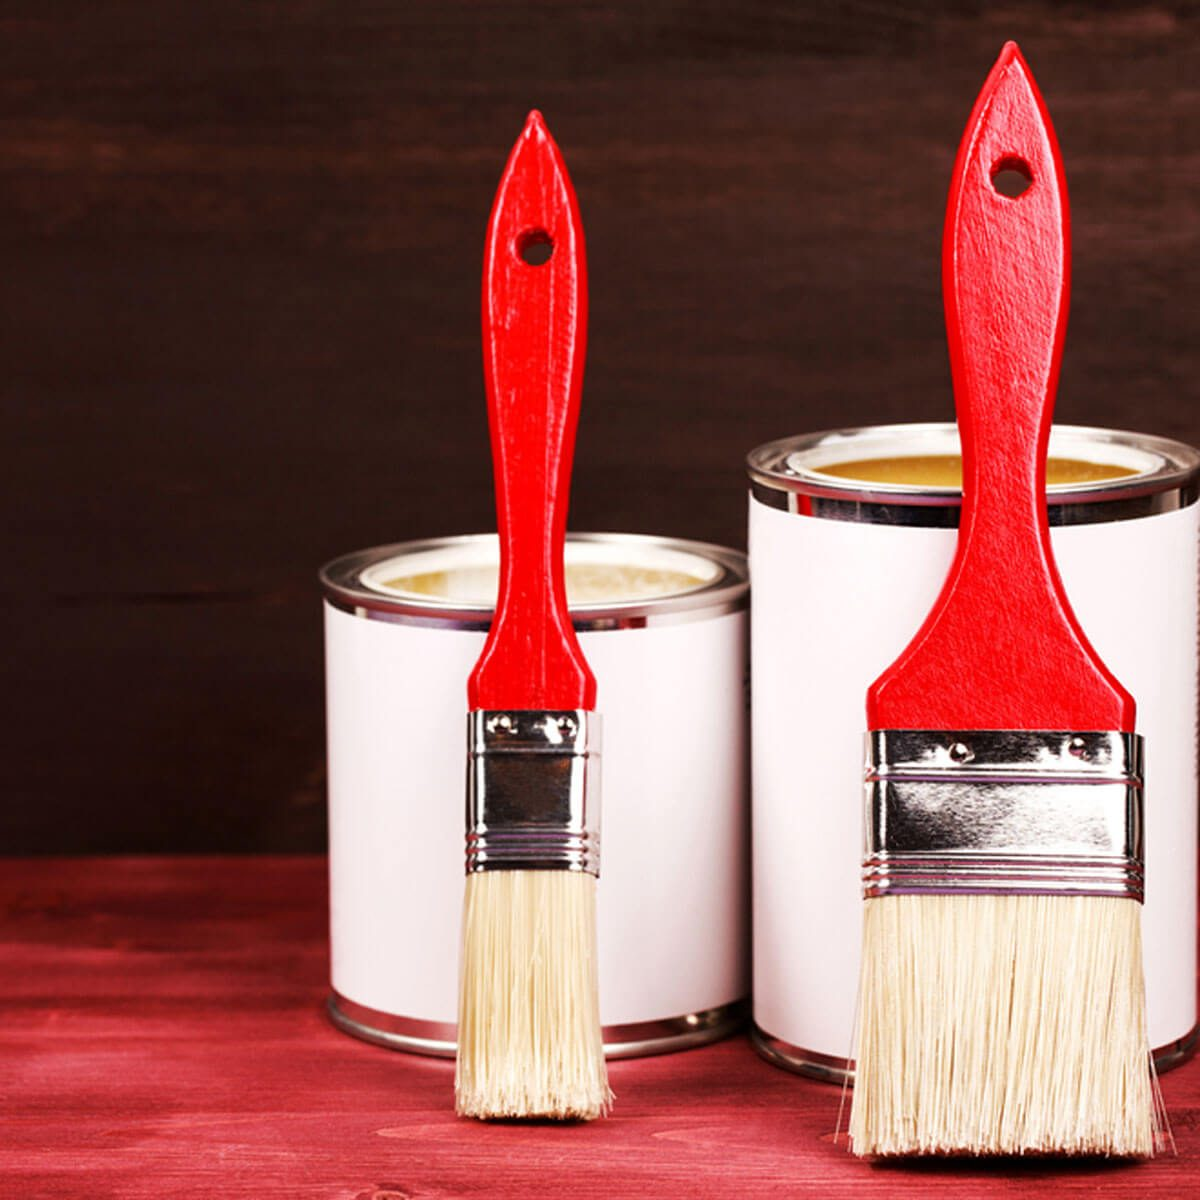 dfh1_shutterstock_497543731 paint bucket brushes